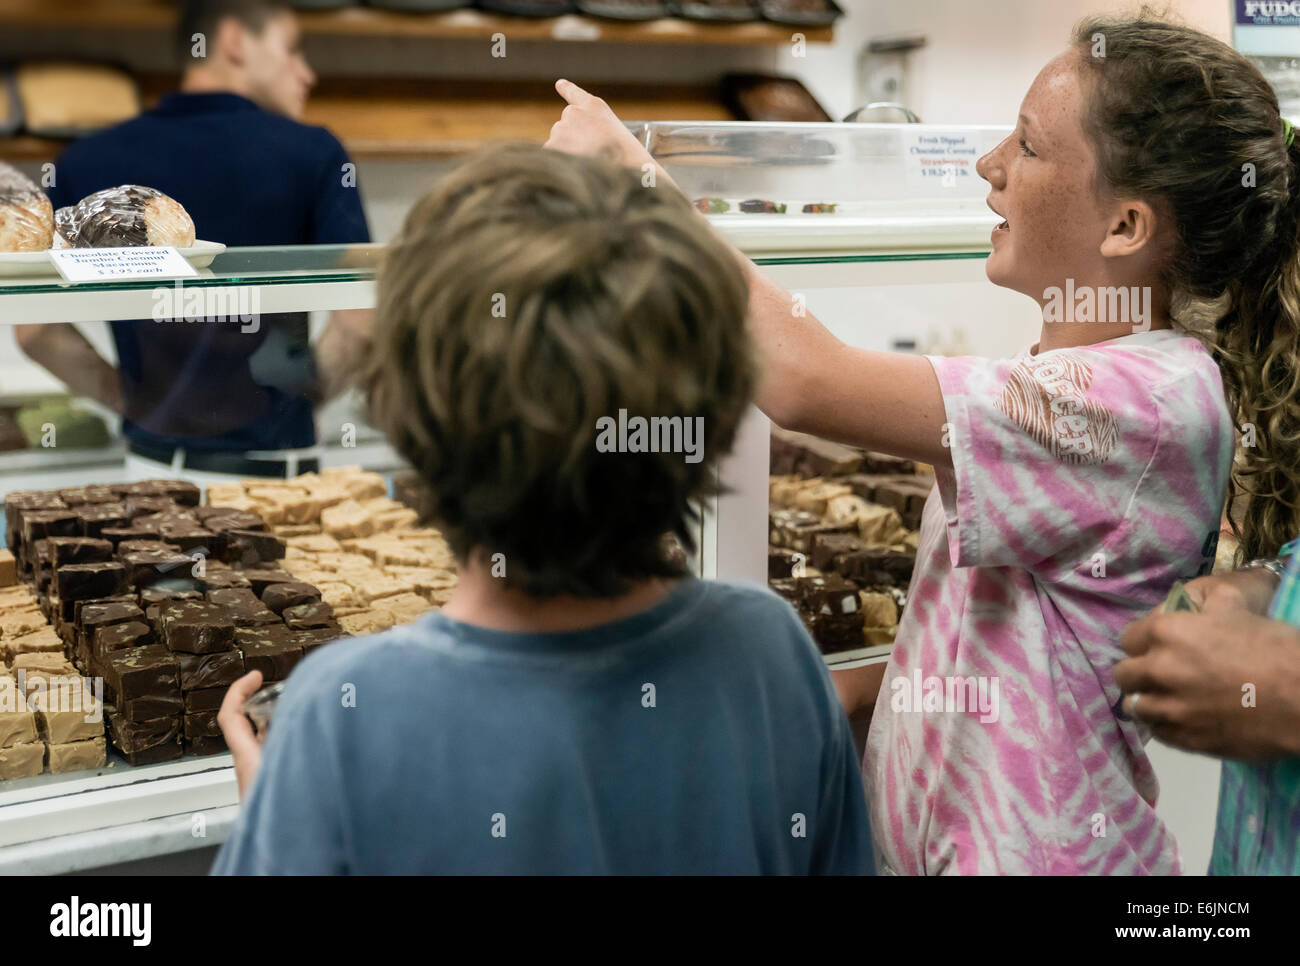 Kids une sélection dans un fudge shop. Photo Stock